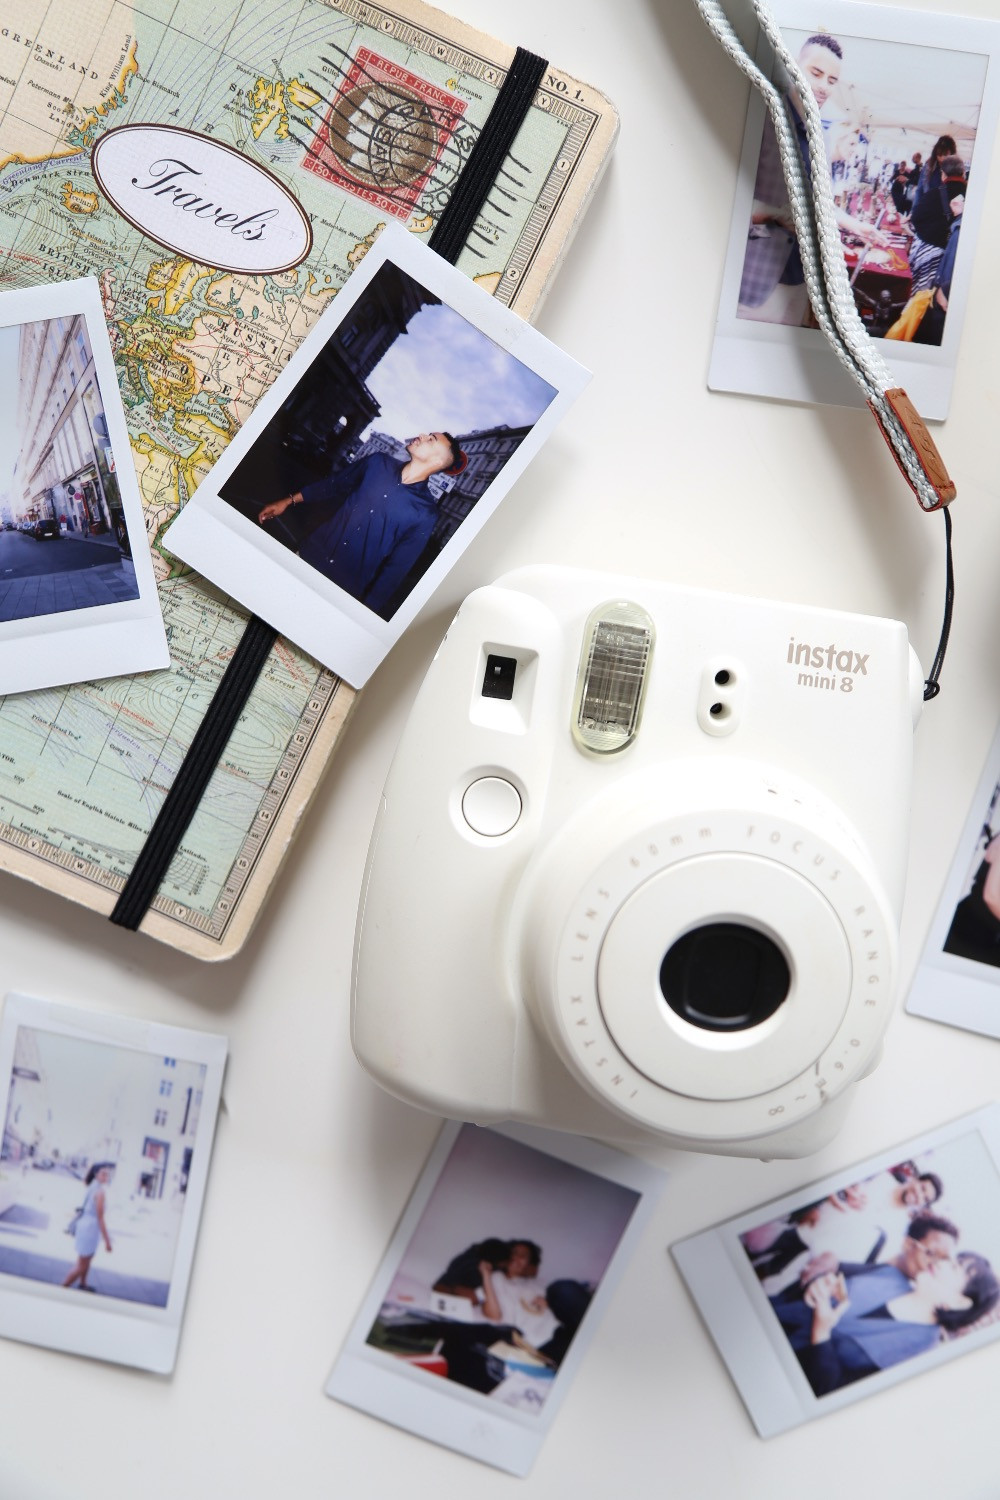 Instax Mini and polaroids